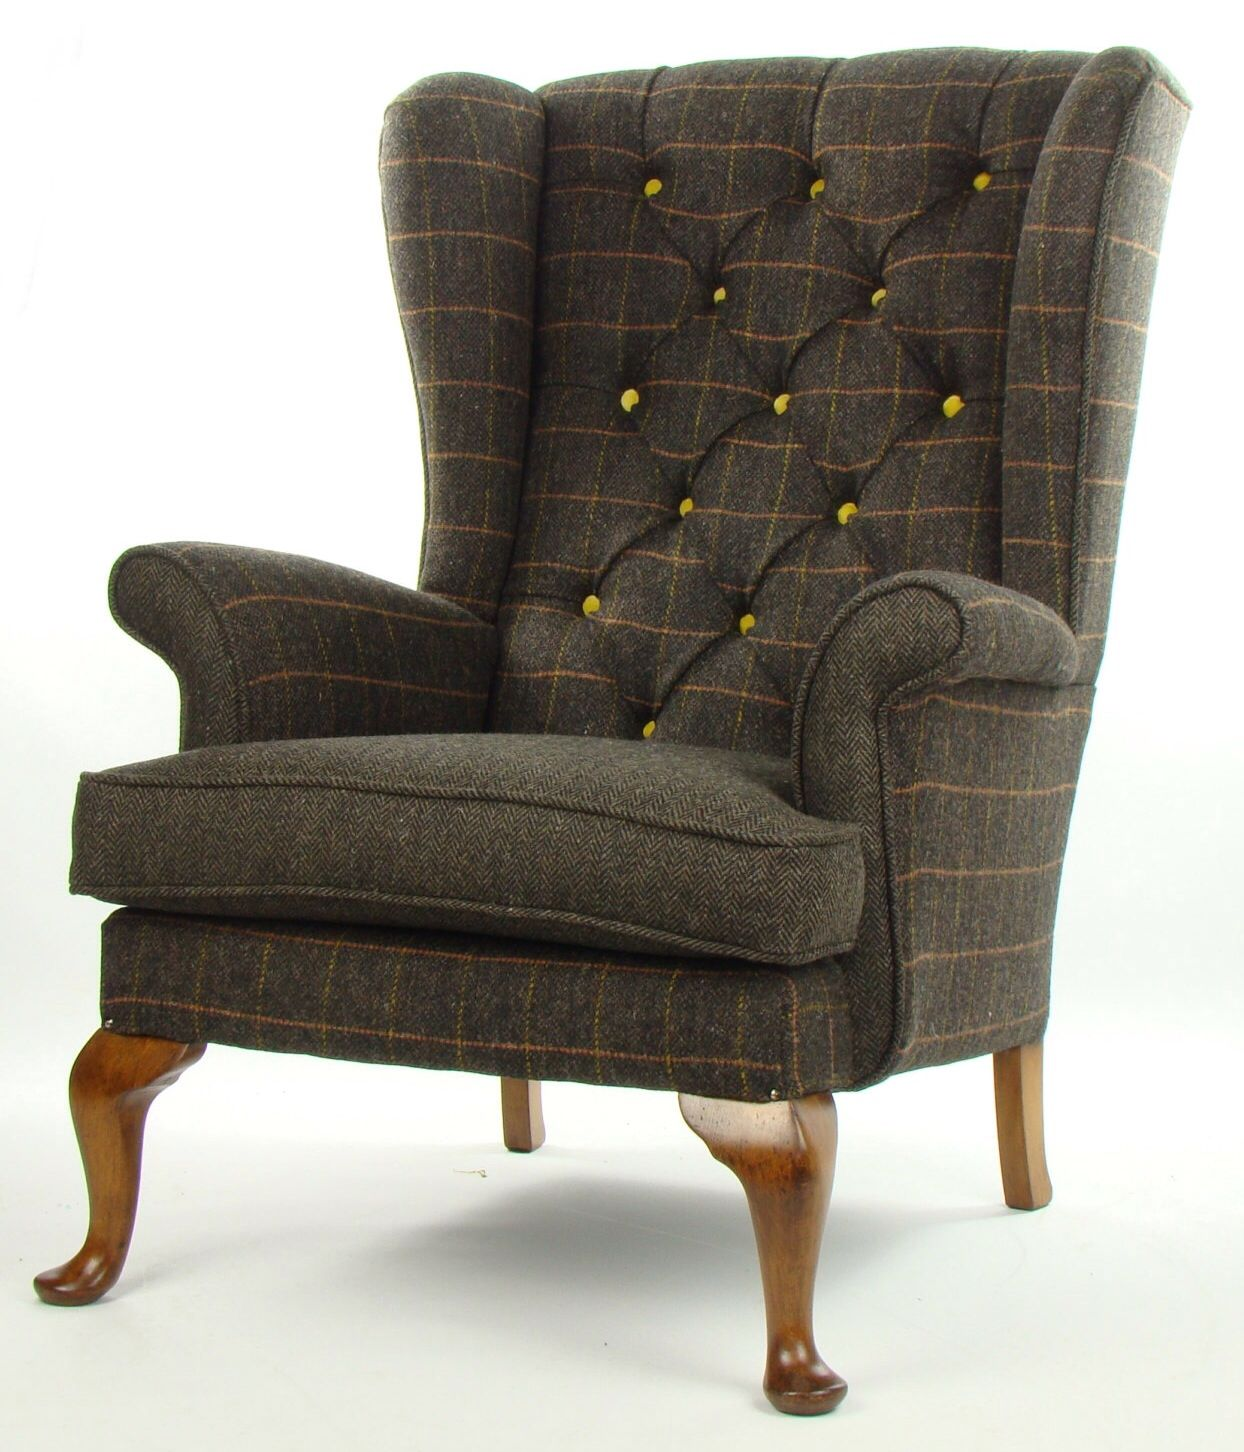 Pin By Carina Teed On Graces Room In 2019: Grey Check And Herringbone Wing Chair, Fireside, Yellow